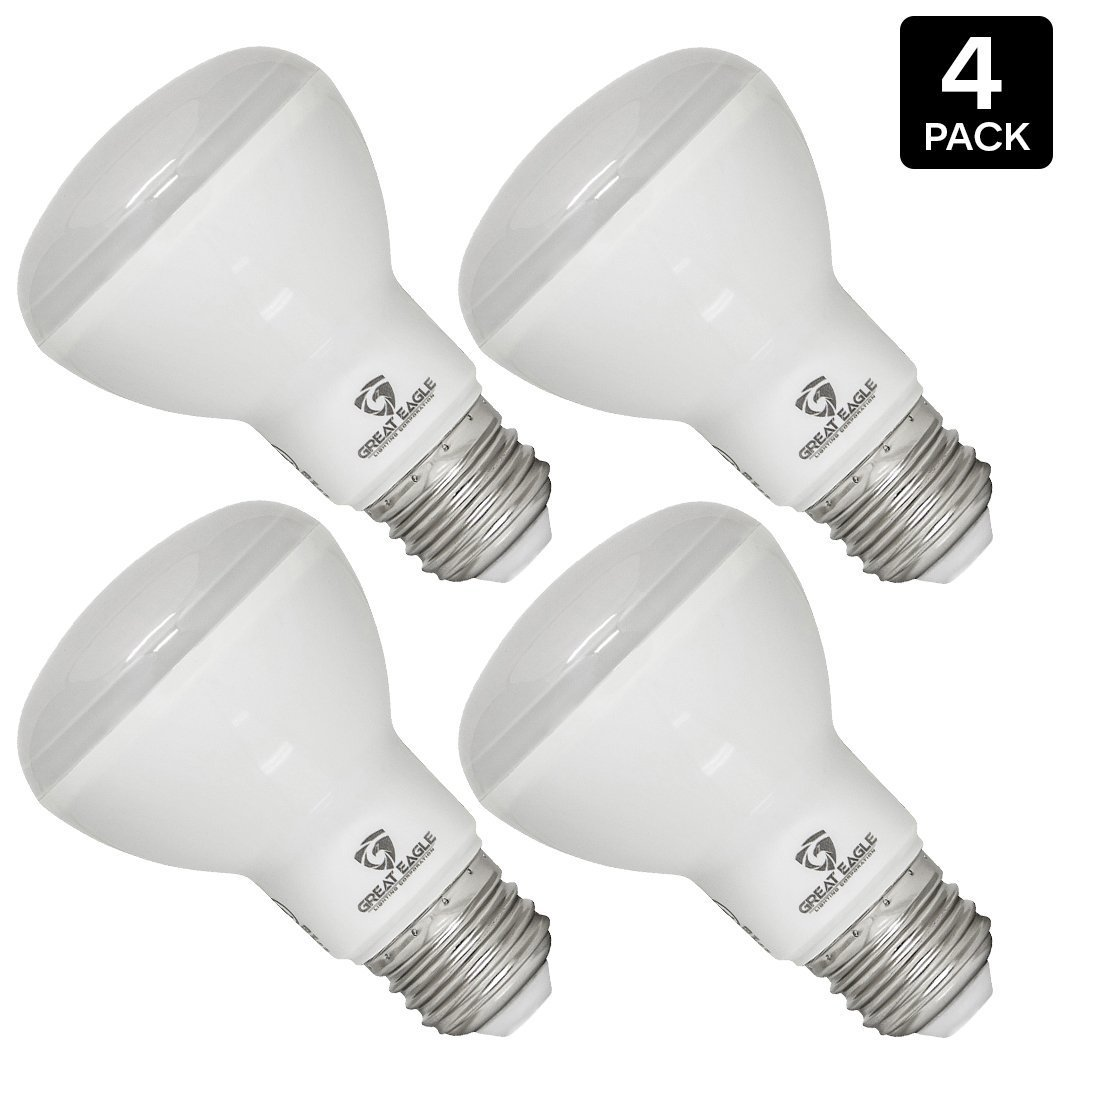 Great Eagle LED BR20 Dimmable Light Bulb. 7W (60W) UL Listed Bright White 3000K Light Bulb for Recessed, Track, and Pendant Lighting Fixtures - USA Seller by Great Eagle Lighting Corporation